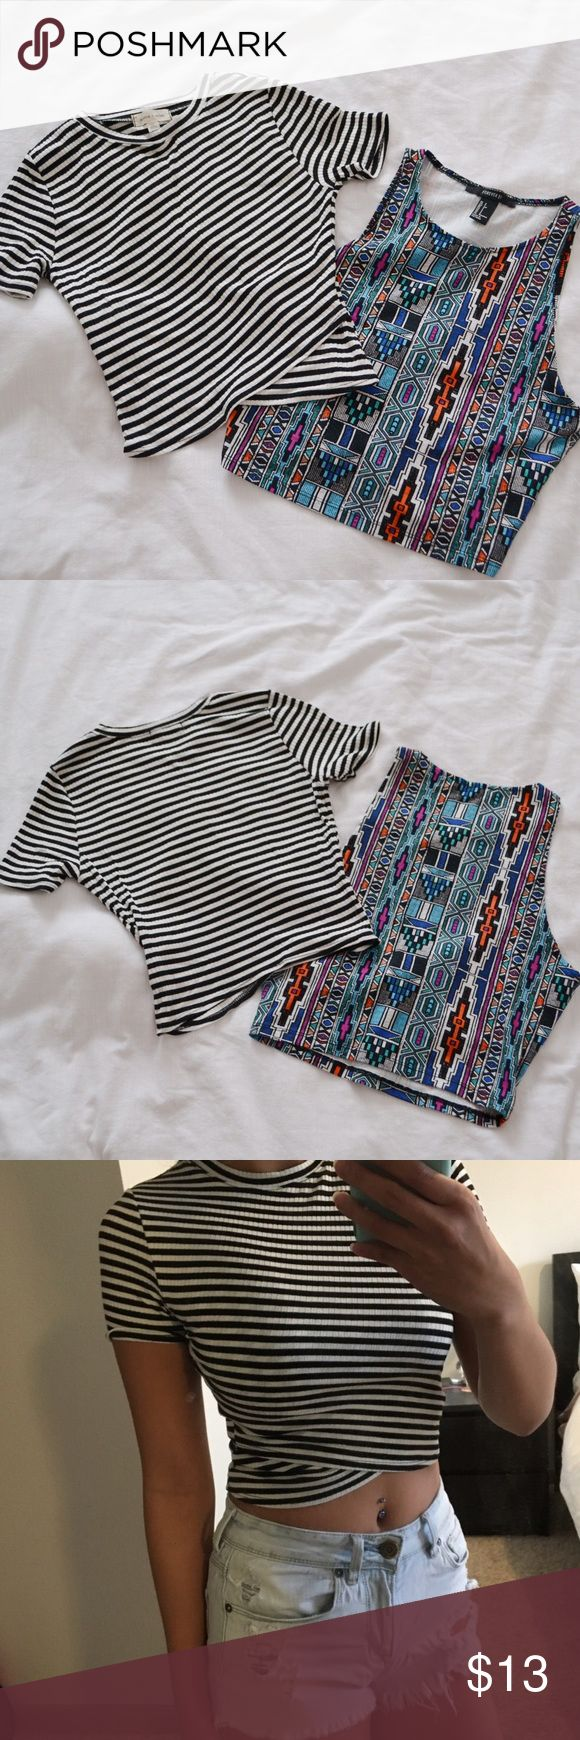 Bundle // NEW Stripe & Aztec Crop Tops [ Bundle ] // NEW Silence+Noise Stripe & XXI Aztec Crop Tops // Size: XS (Left) & Small (Right) // New - never worn // Can be sold separately, view other listings! Forever 21 Tops Crop Tops